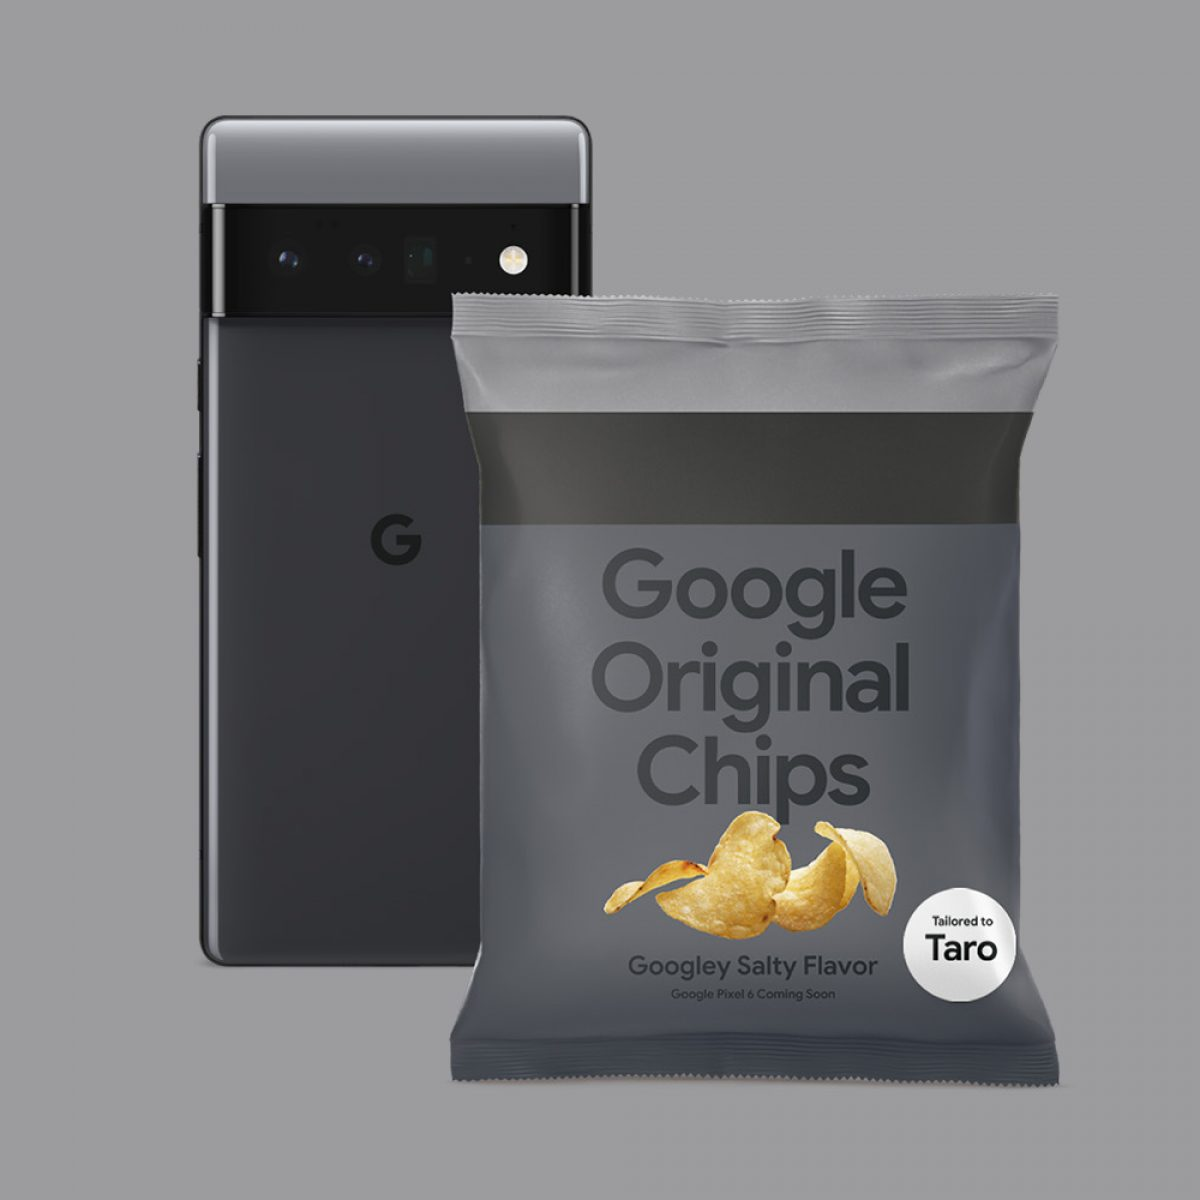 eating potato chips by google